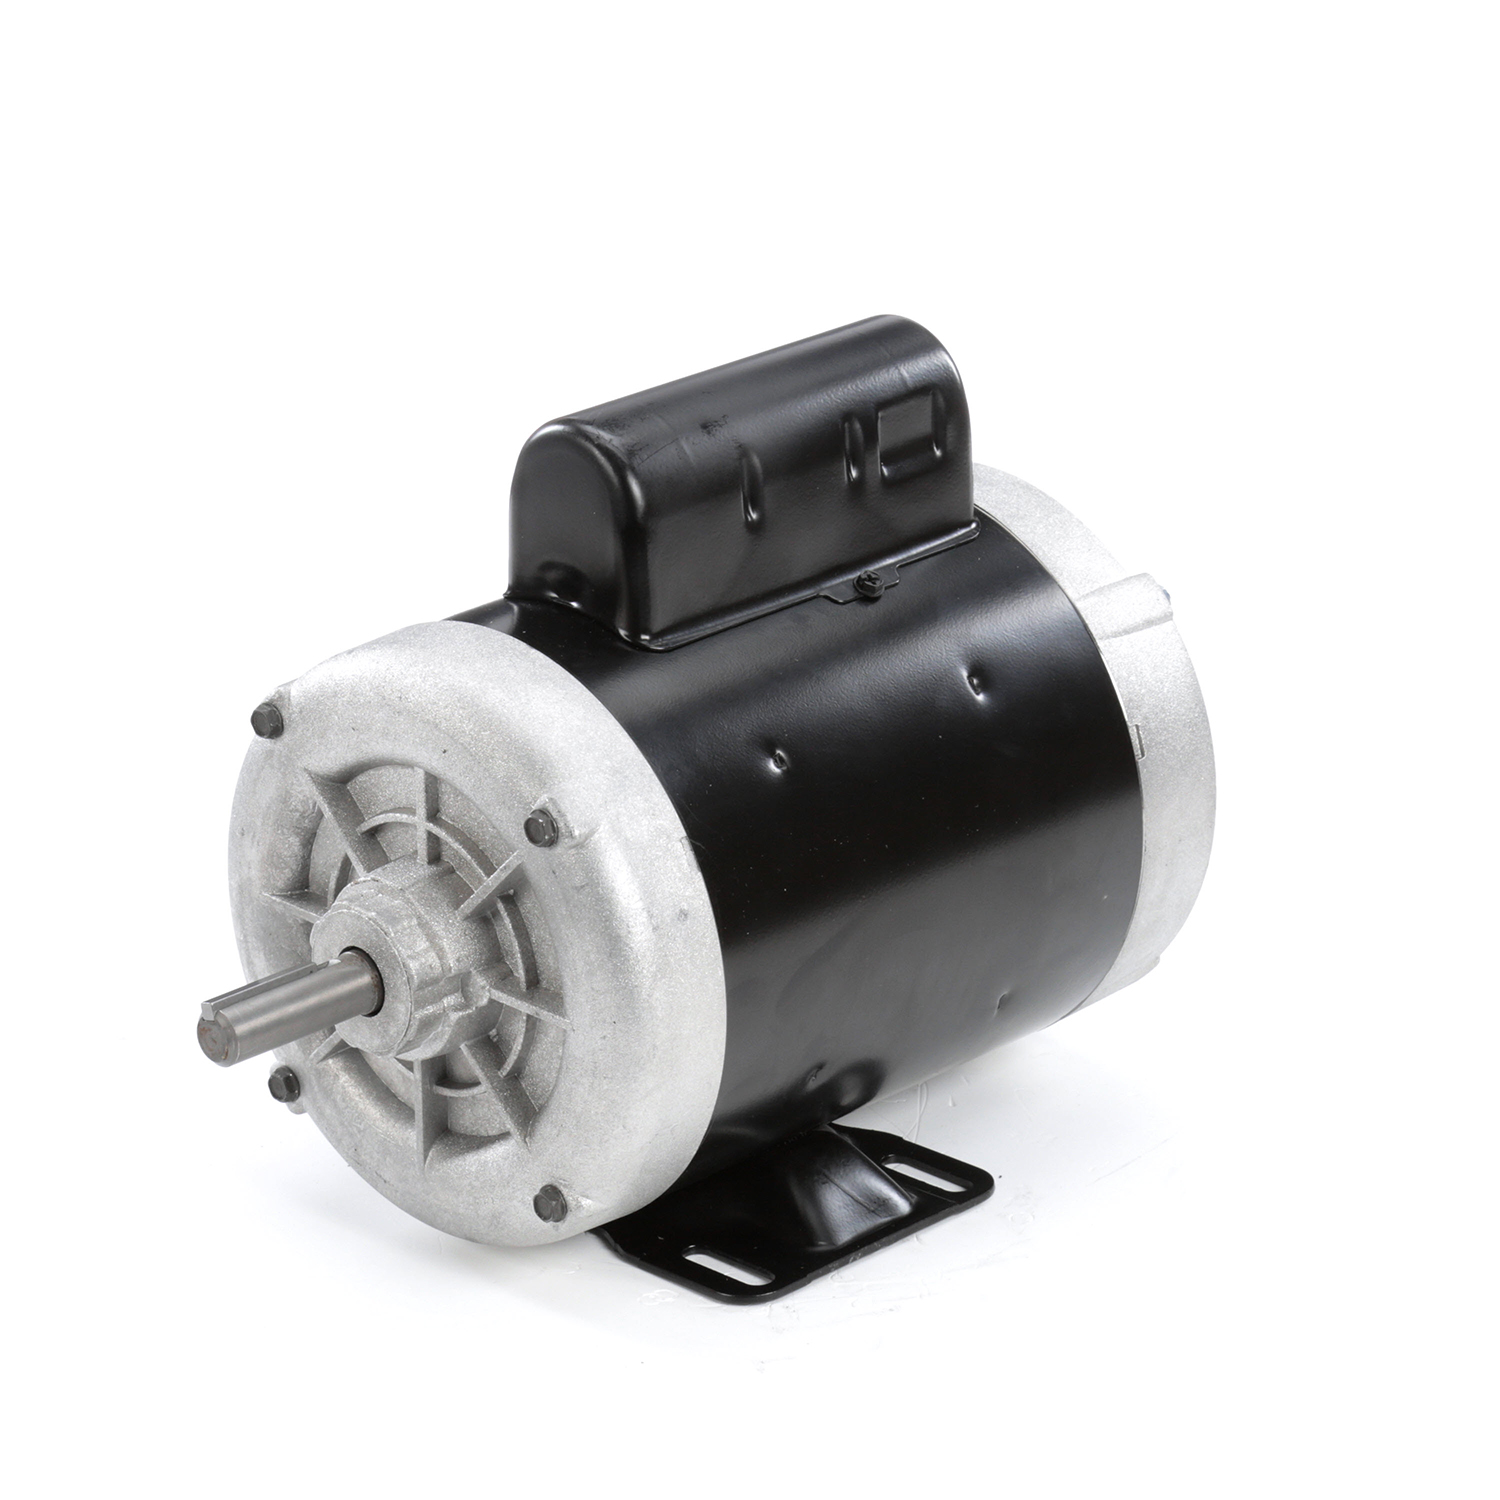 1.0 HP, 115/230 V, Aeration Fan